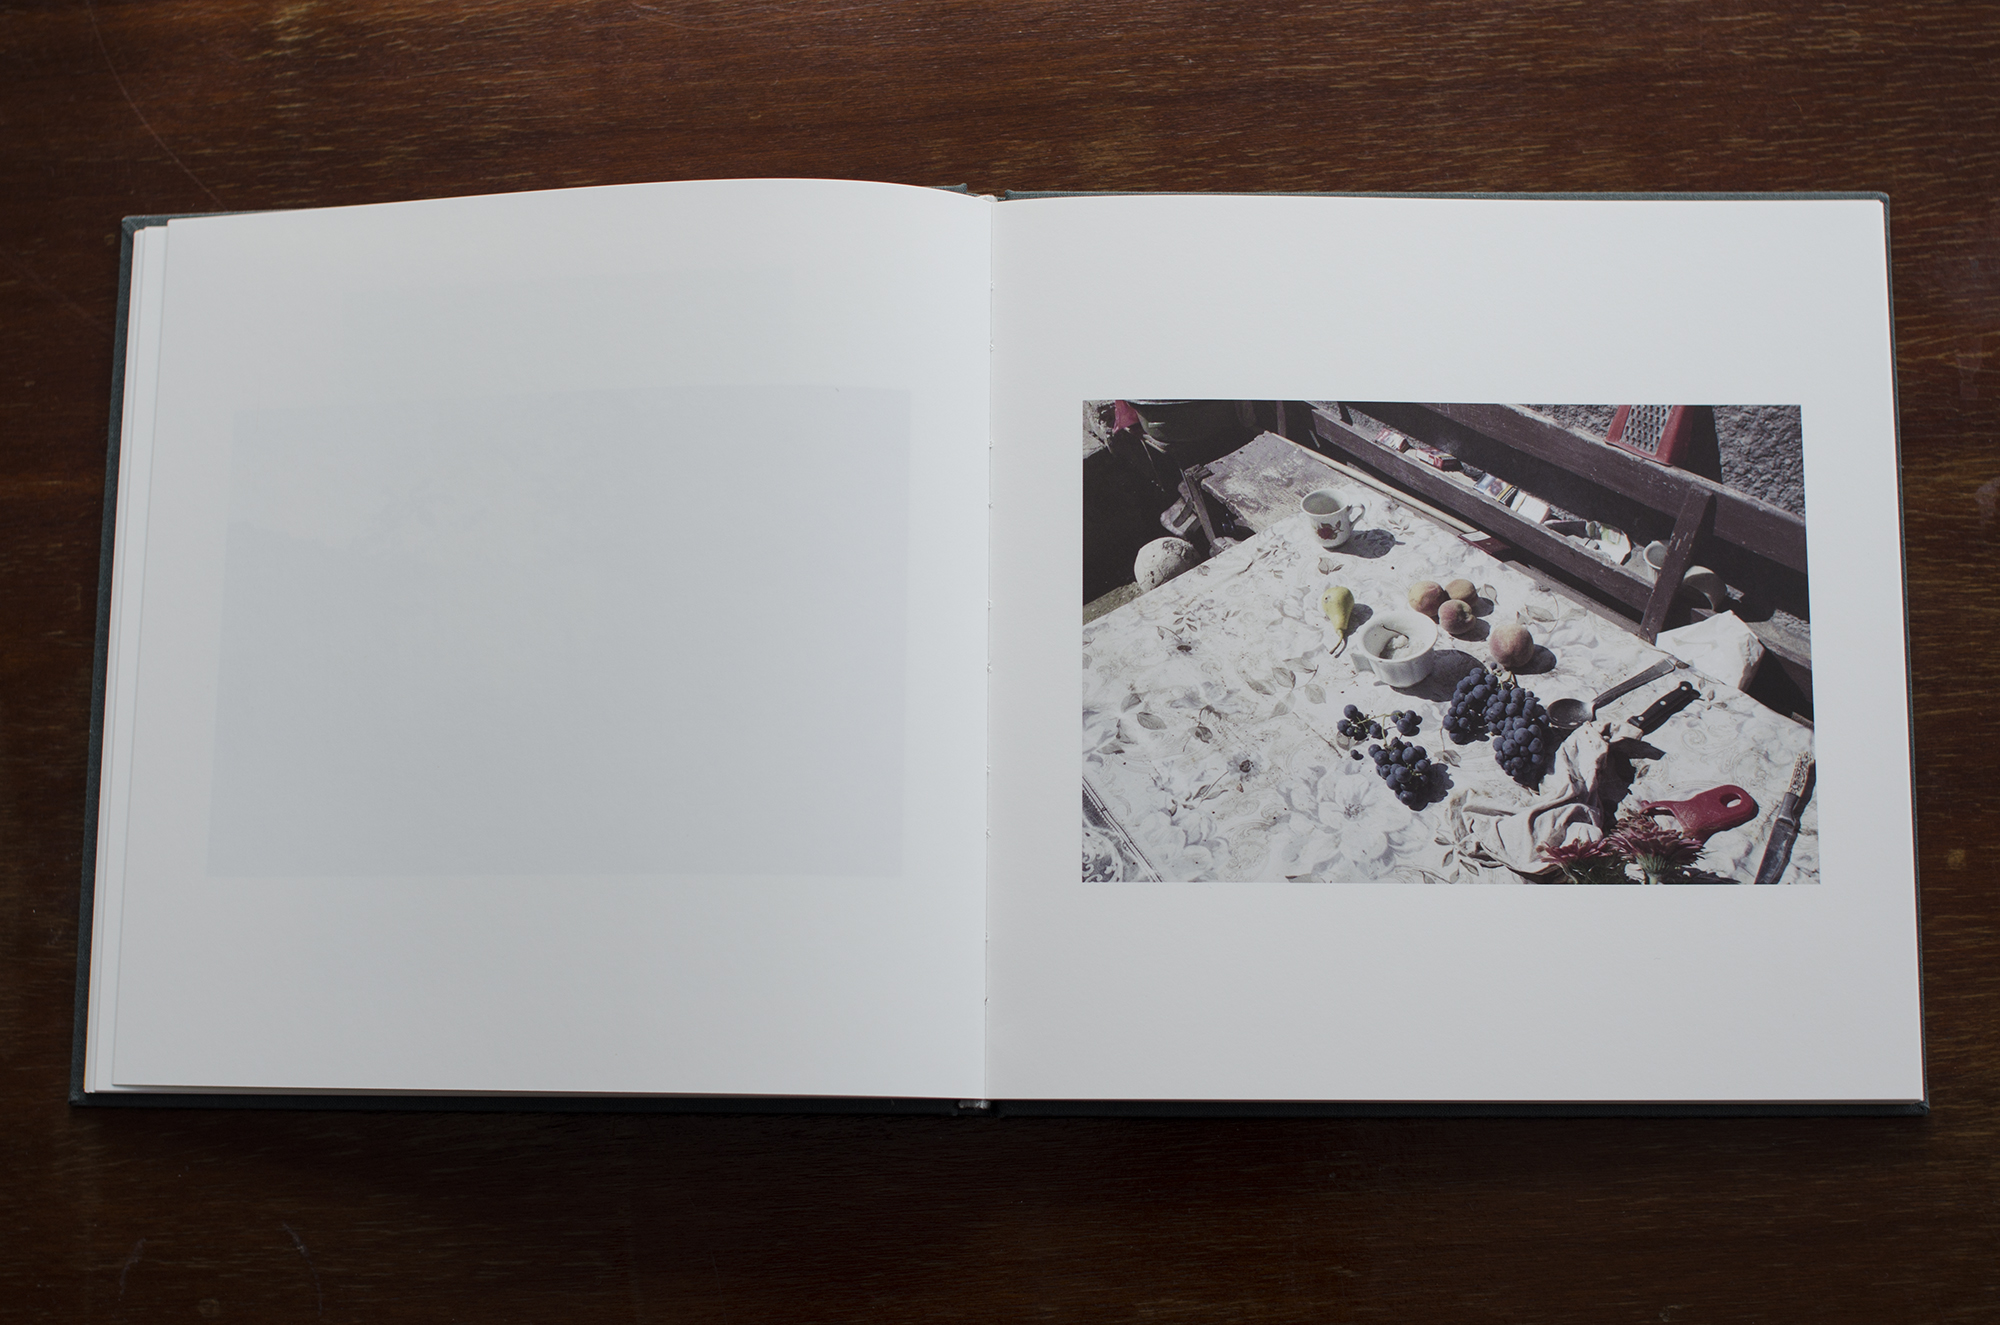 Ovidiu+Gordan+Familiar+Place+photobook_05.jpg